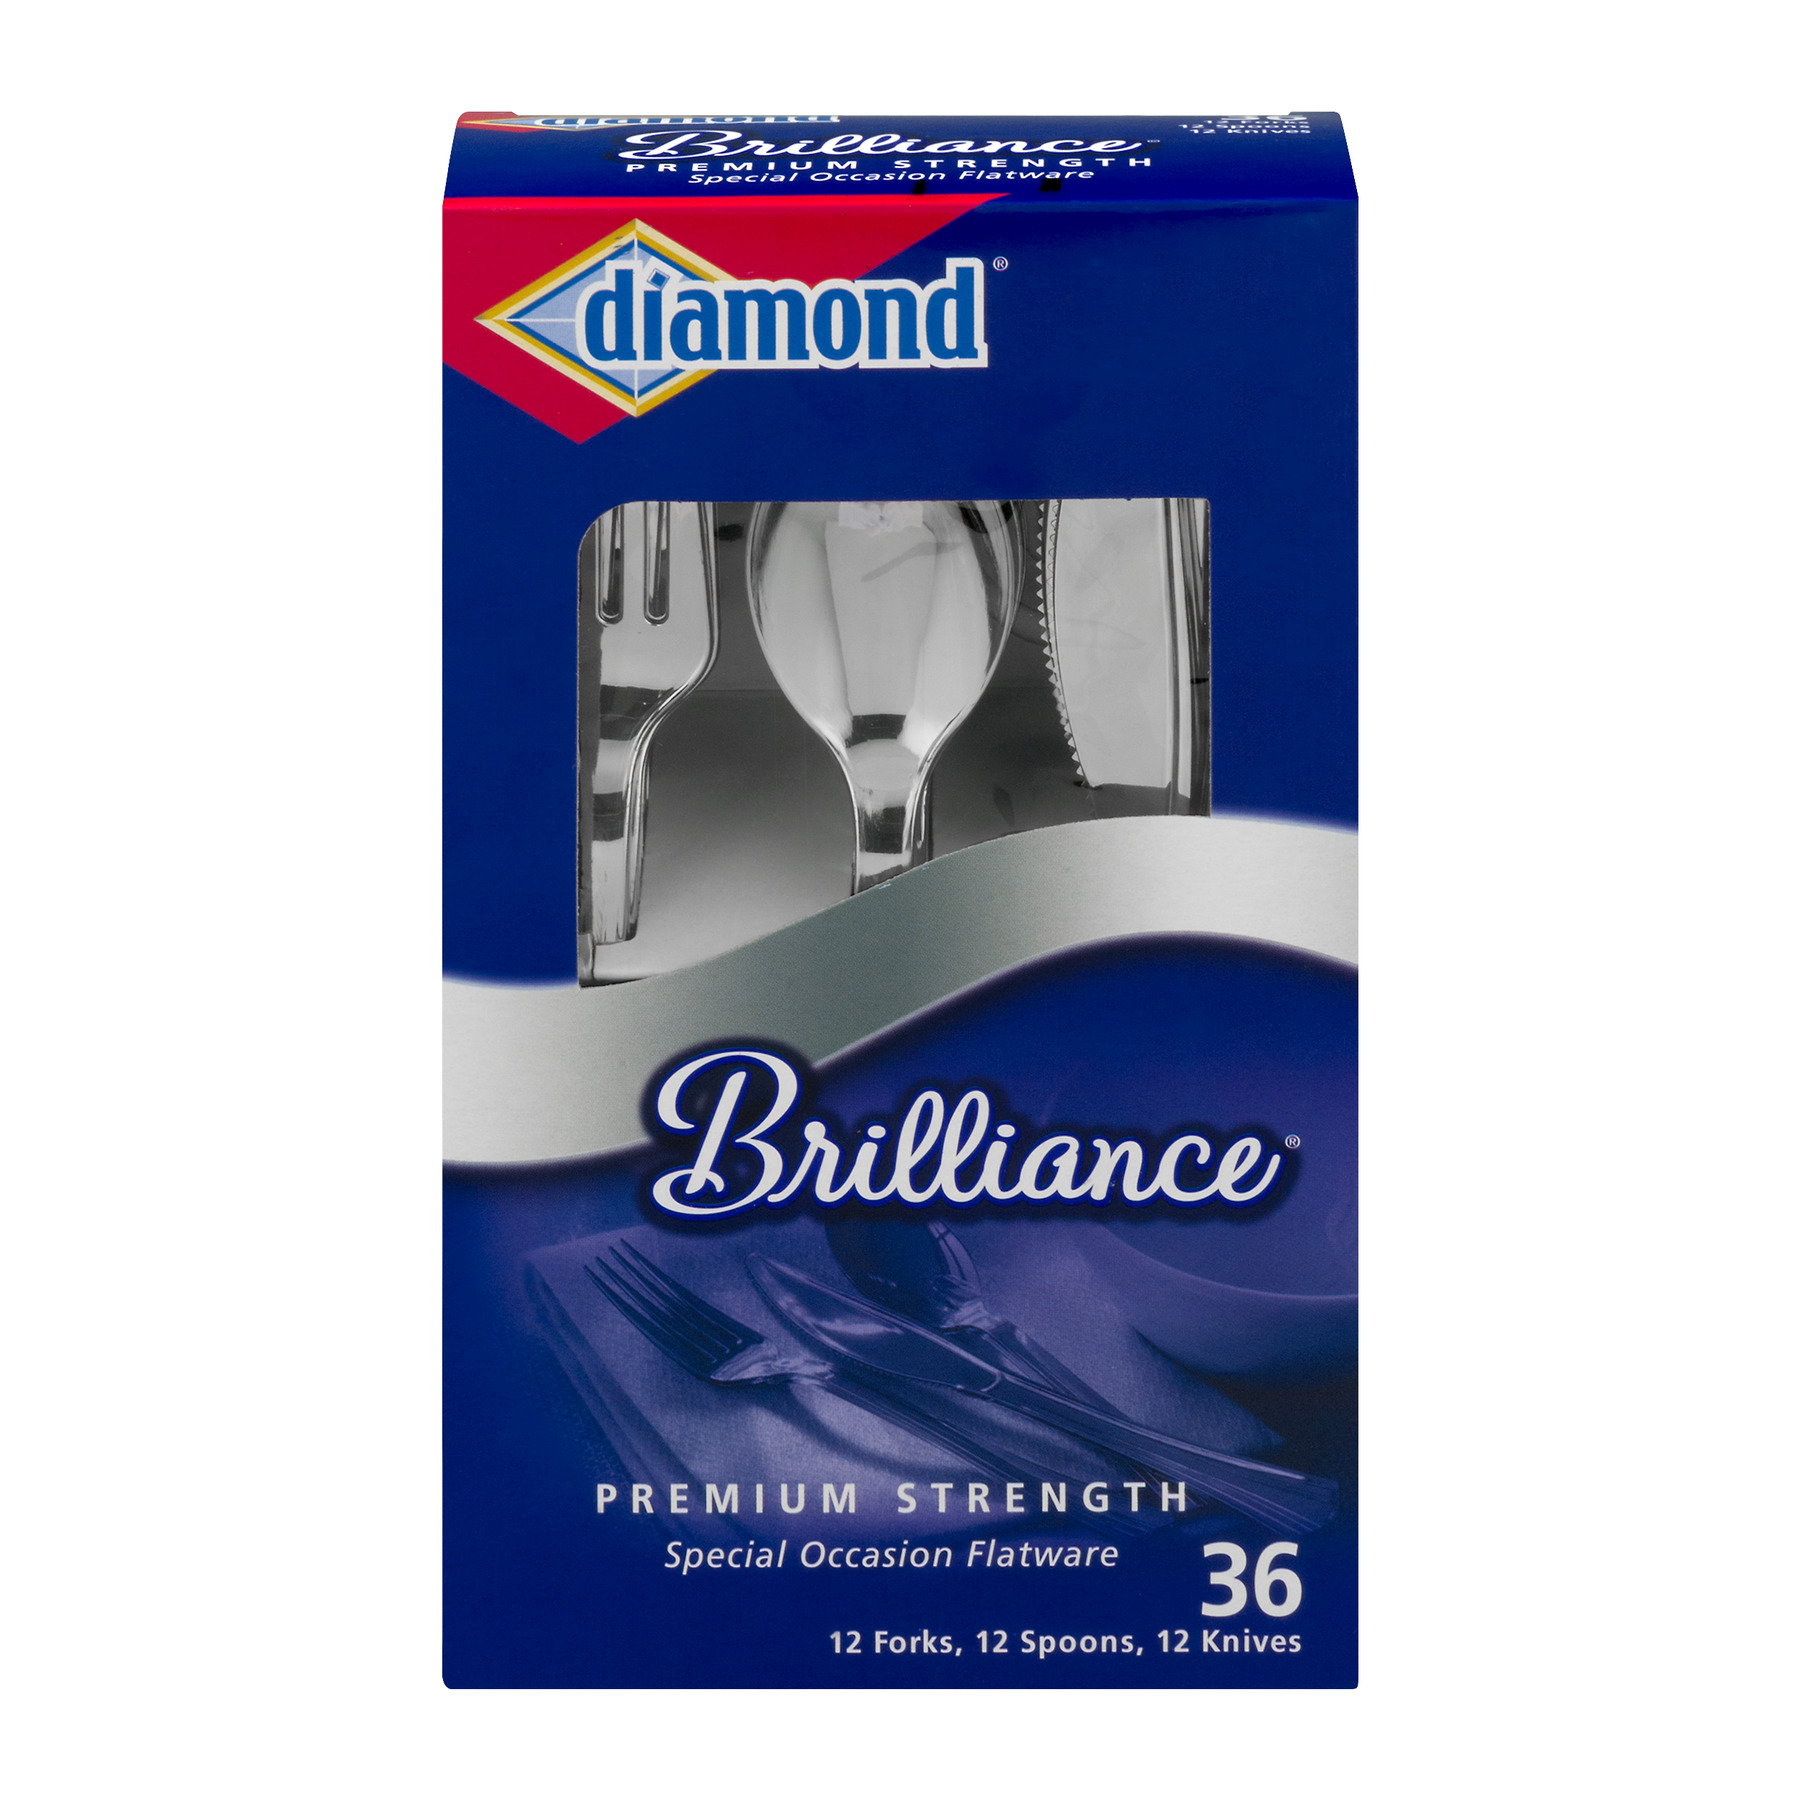 Diamond Brilliance Special Occasion Flatware - 36 CT36.0 CT